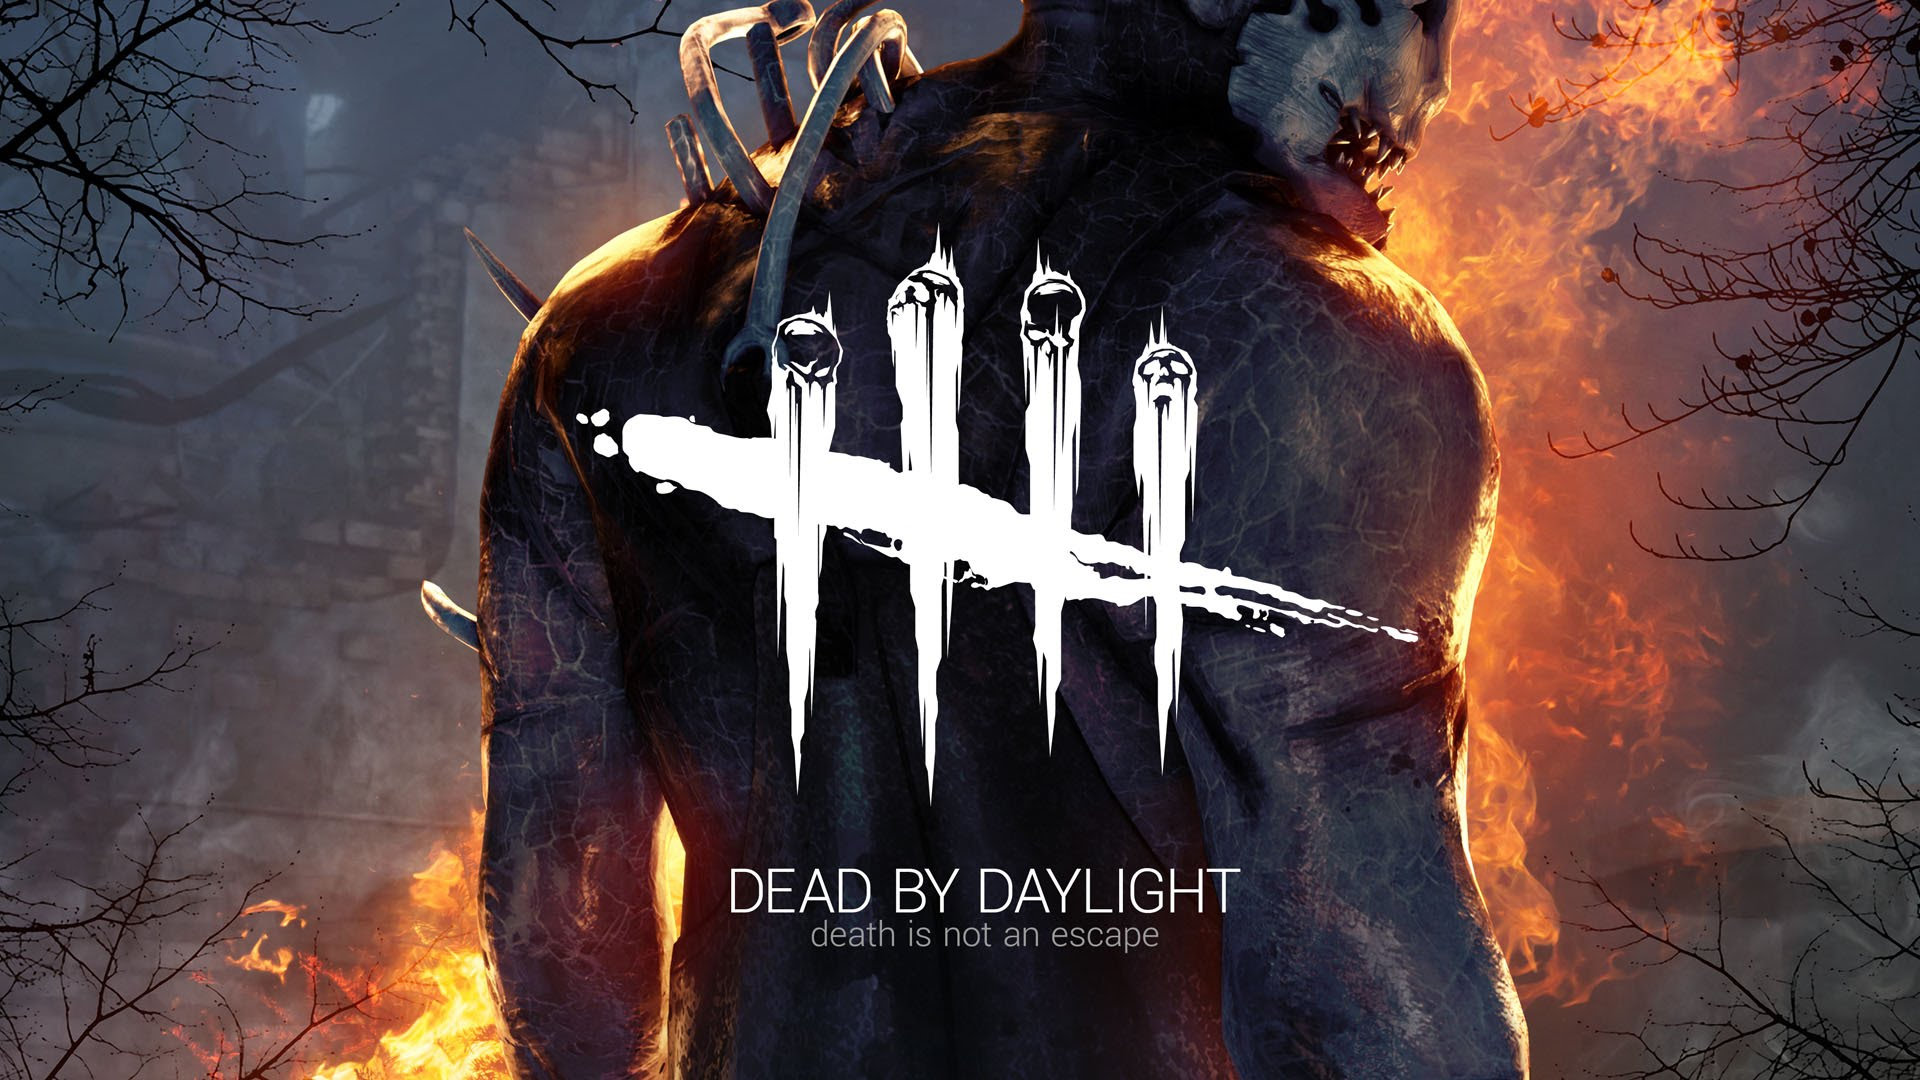 Cryptic Dead By Daylight